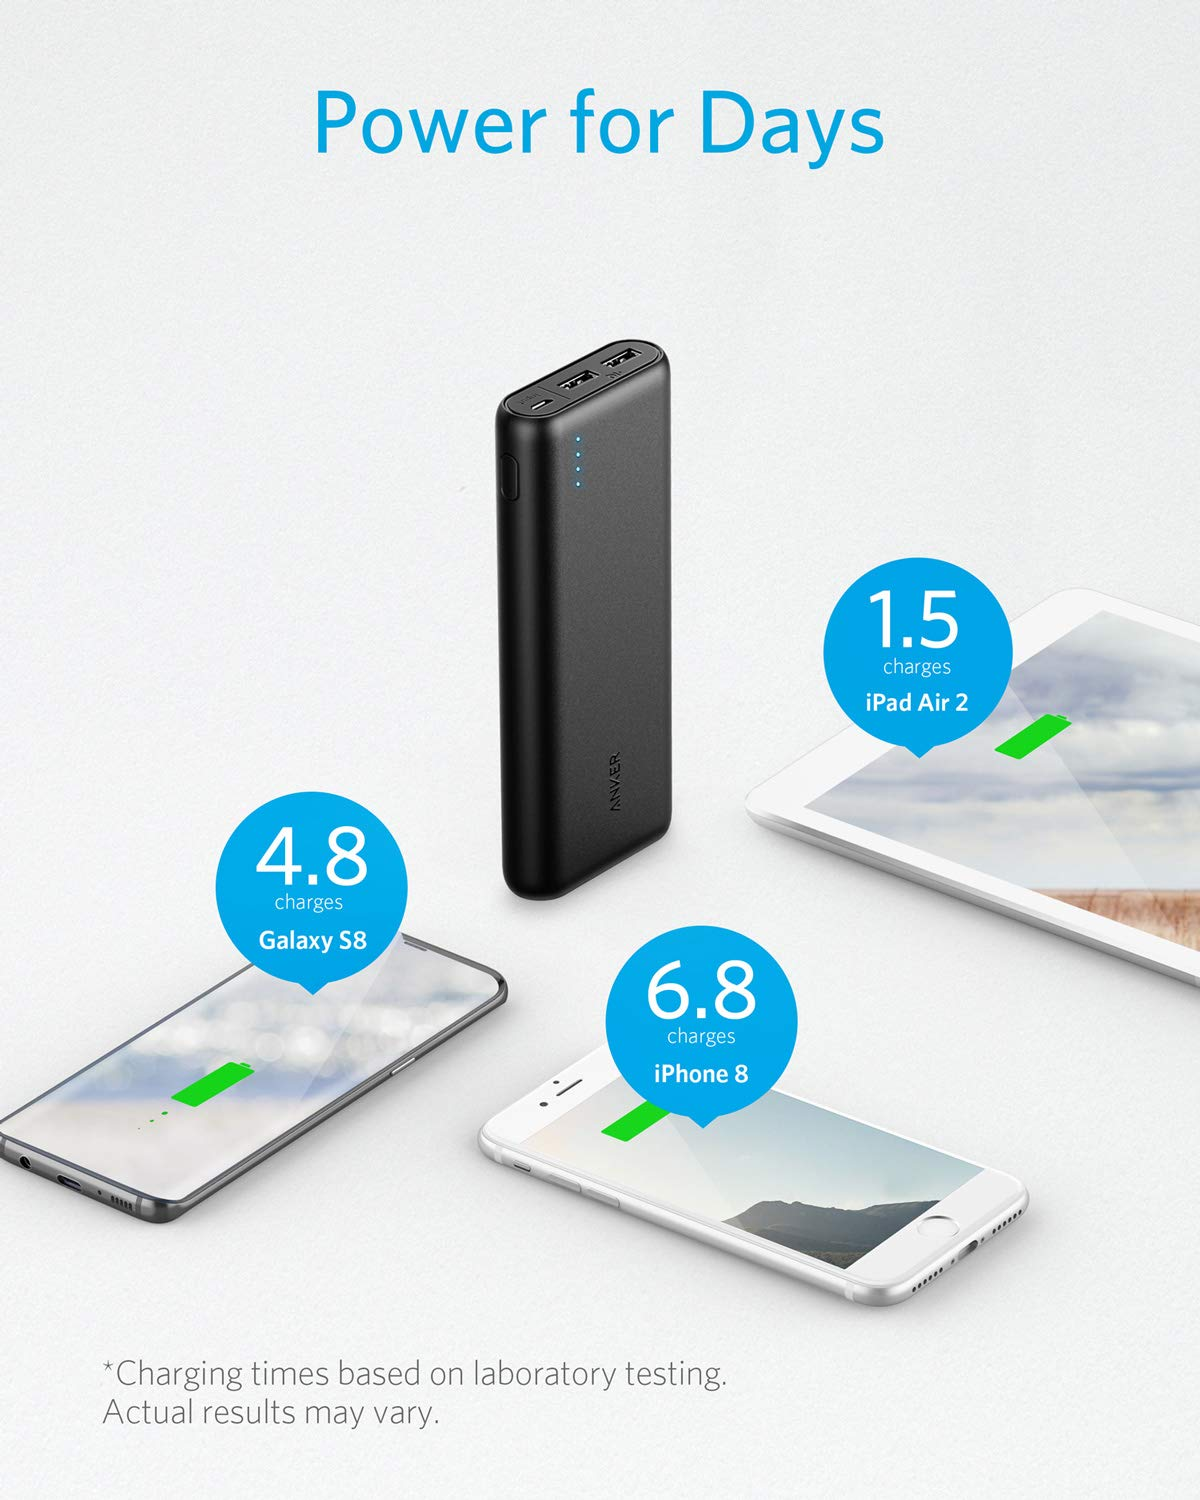 Portable Charger Anker Powercore 20100mah Ultra High P 03 Samsung Travell Branded Asus 21a Micro Usb Capacity Power Bank With 48a Output External Battery Pack For Iphone Ipad